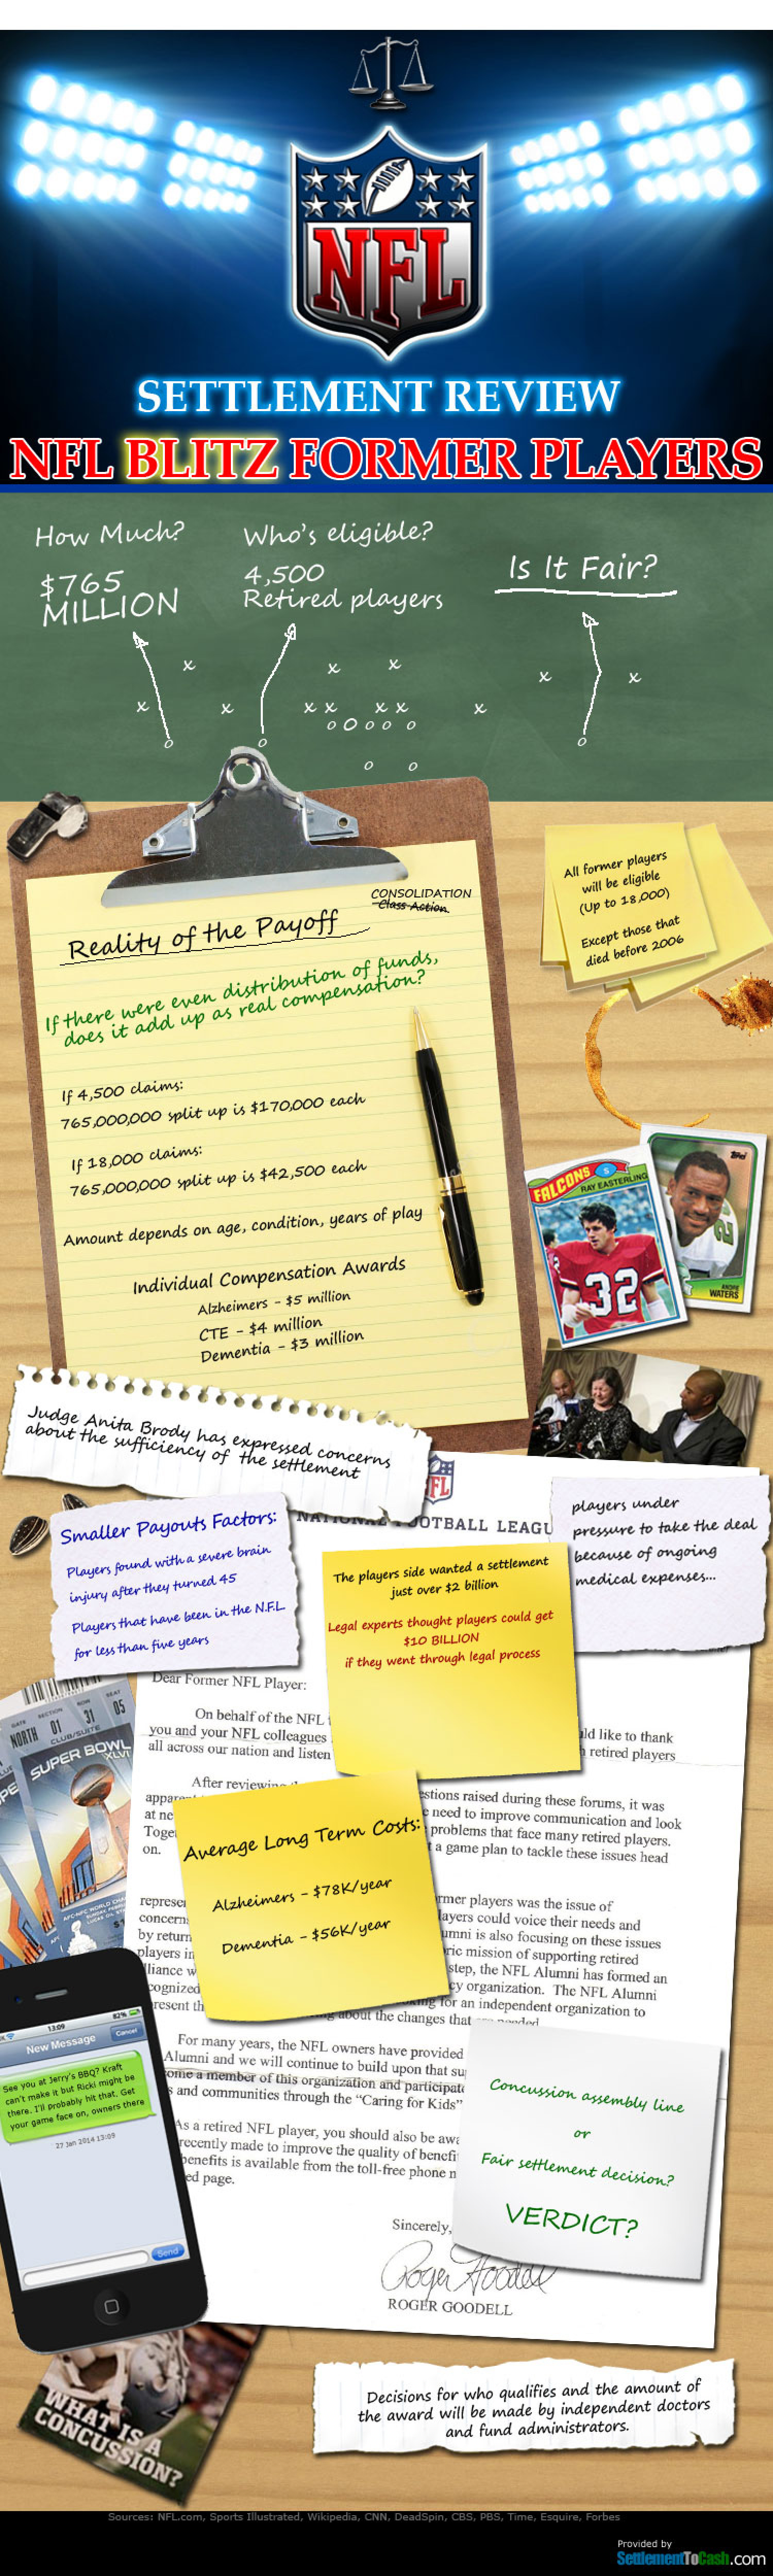 Settlement Review NFL Blitz Former Players Infographic